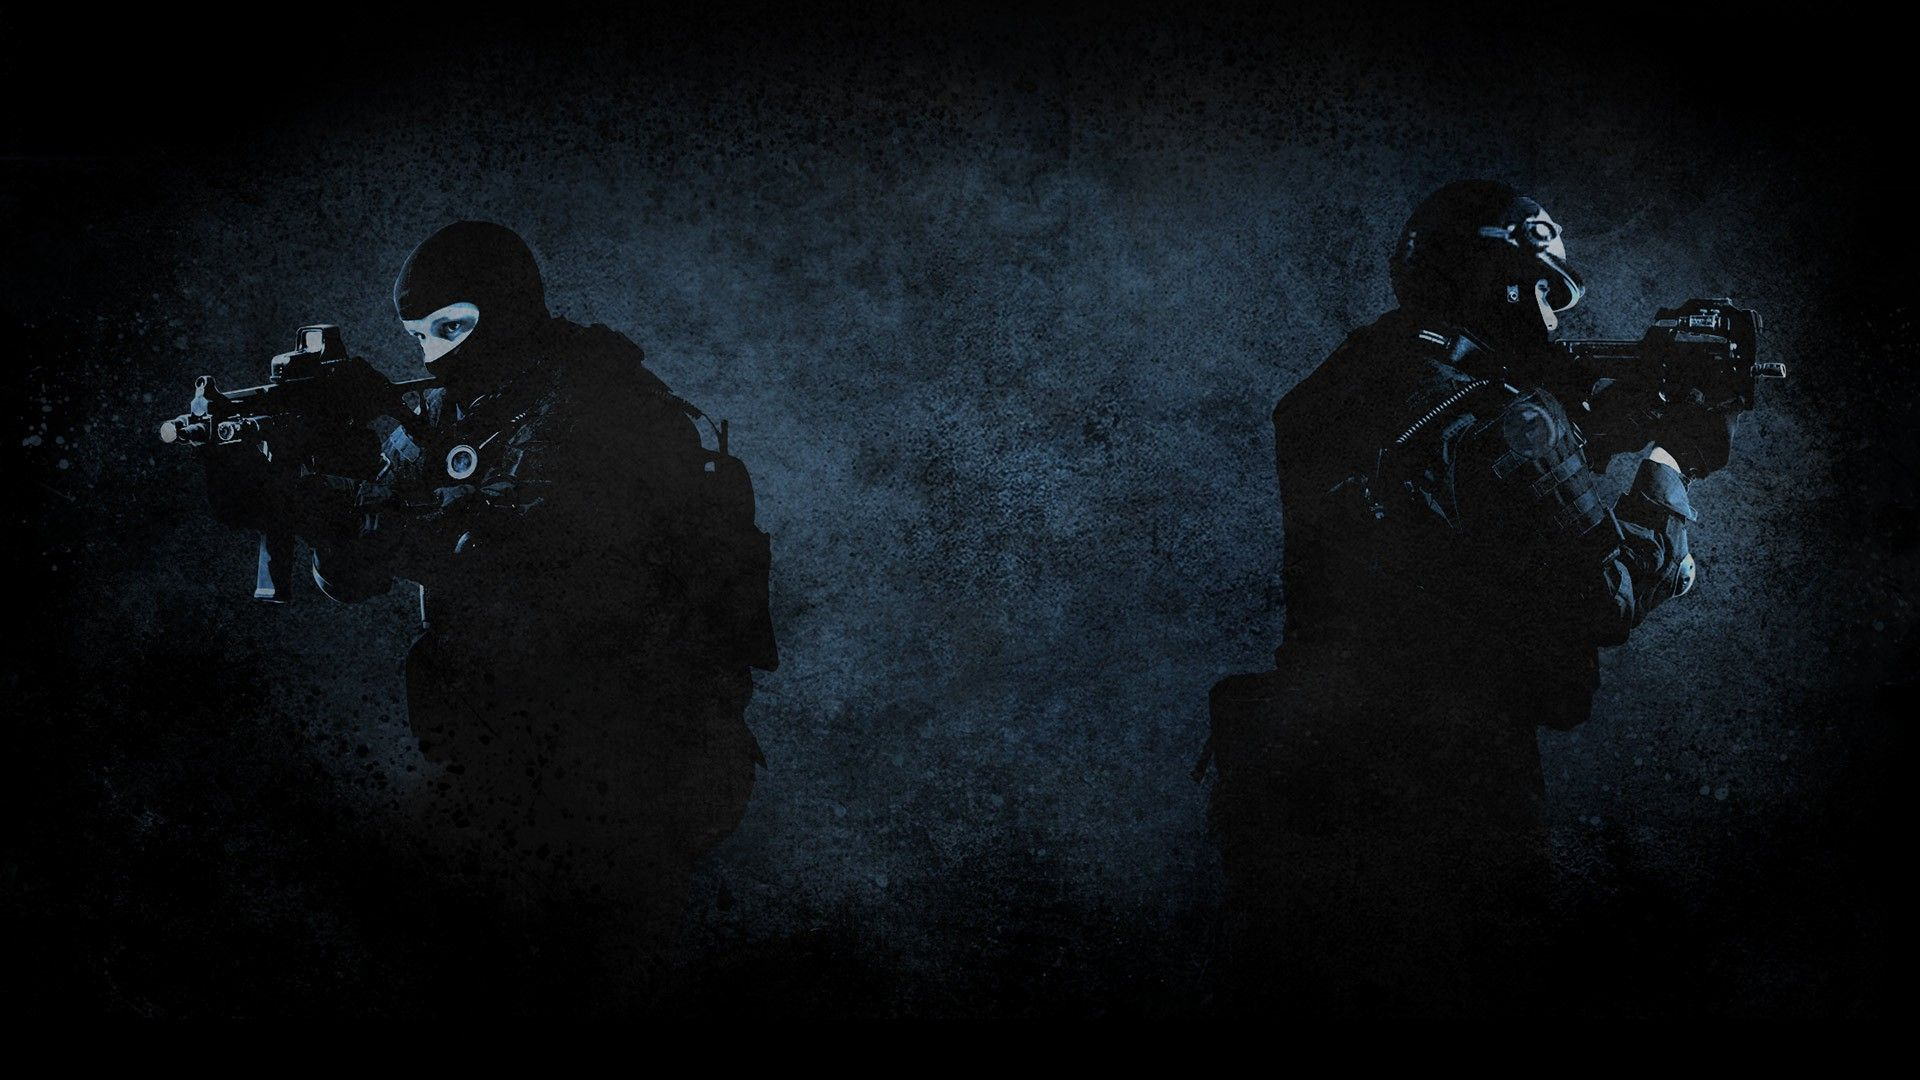 Counter-Strike-wallpaper-wp3804099